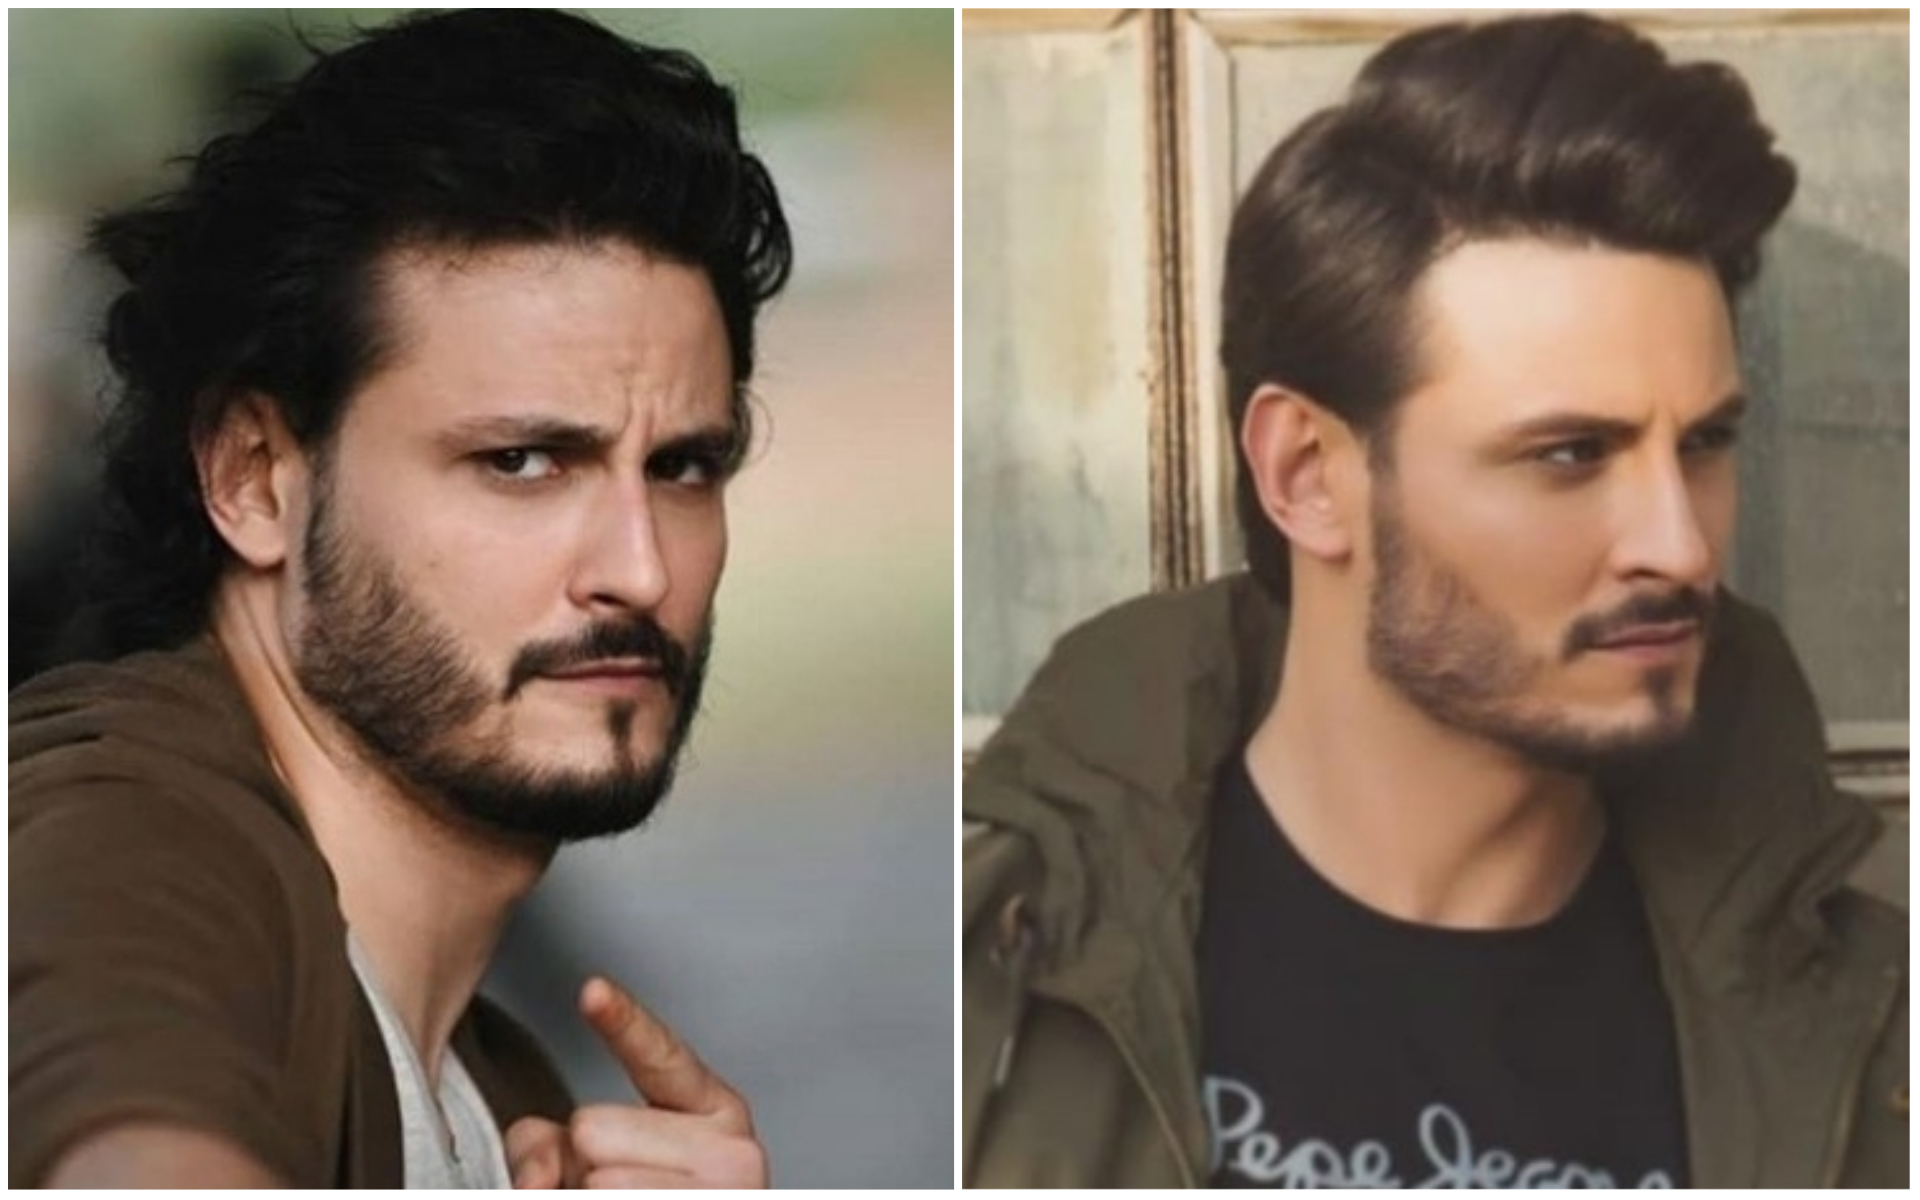 Long Hair VS Short Hair - Which Look Suits Pakistani Celebrities Better?